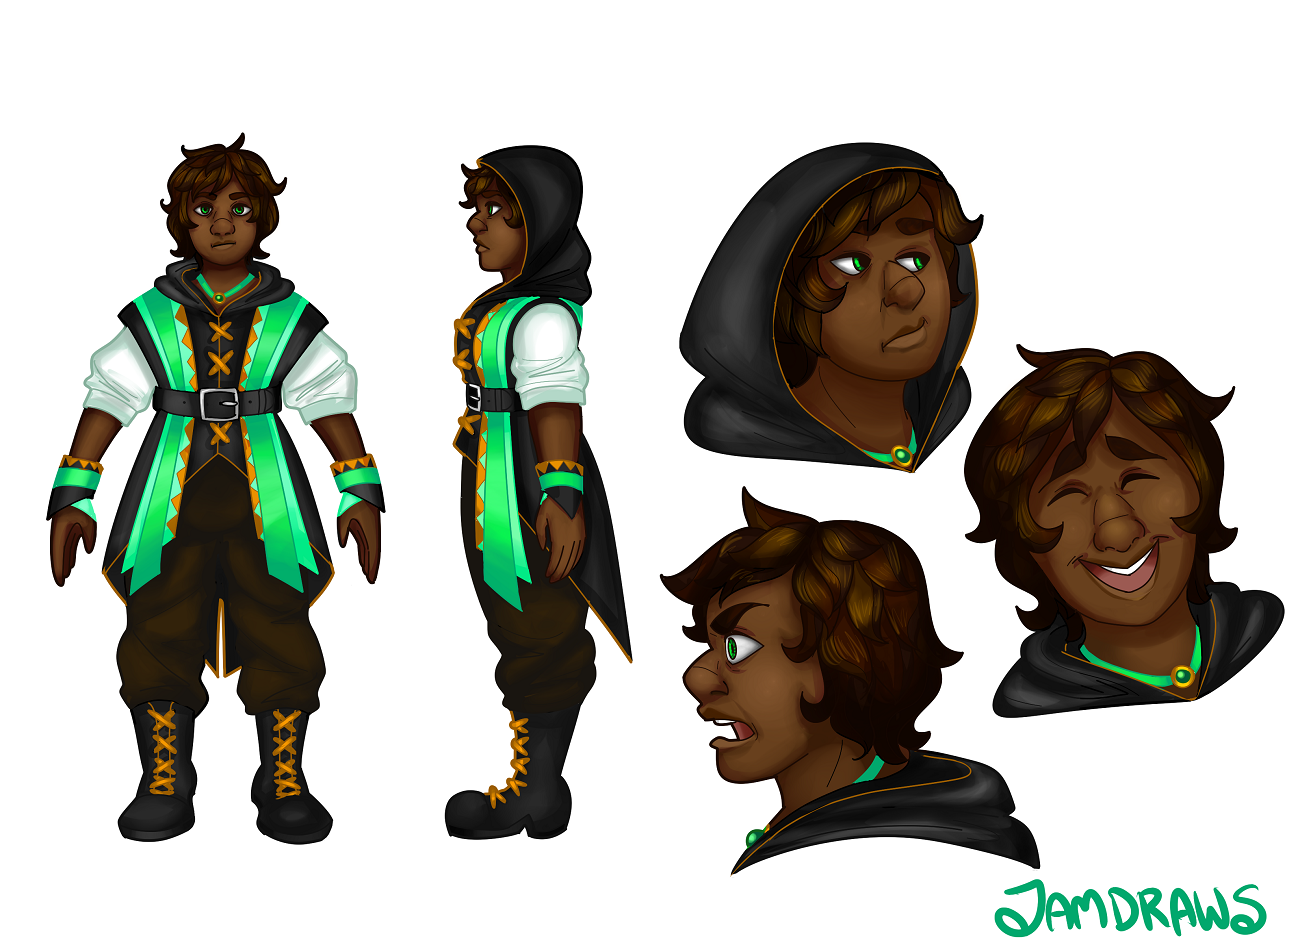 Character Design - July 28, 2015